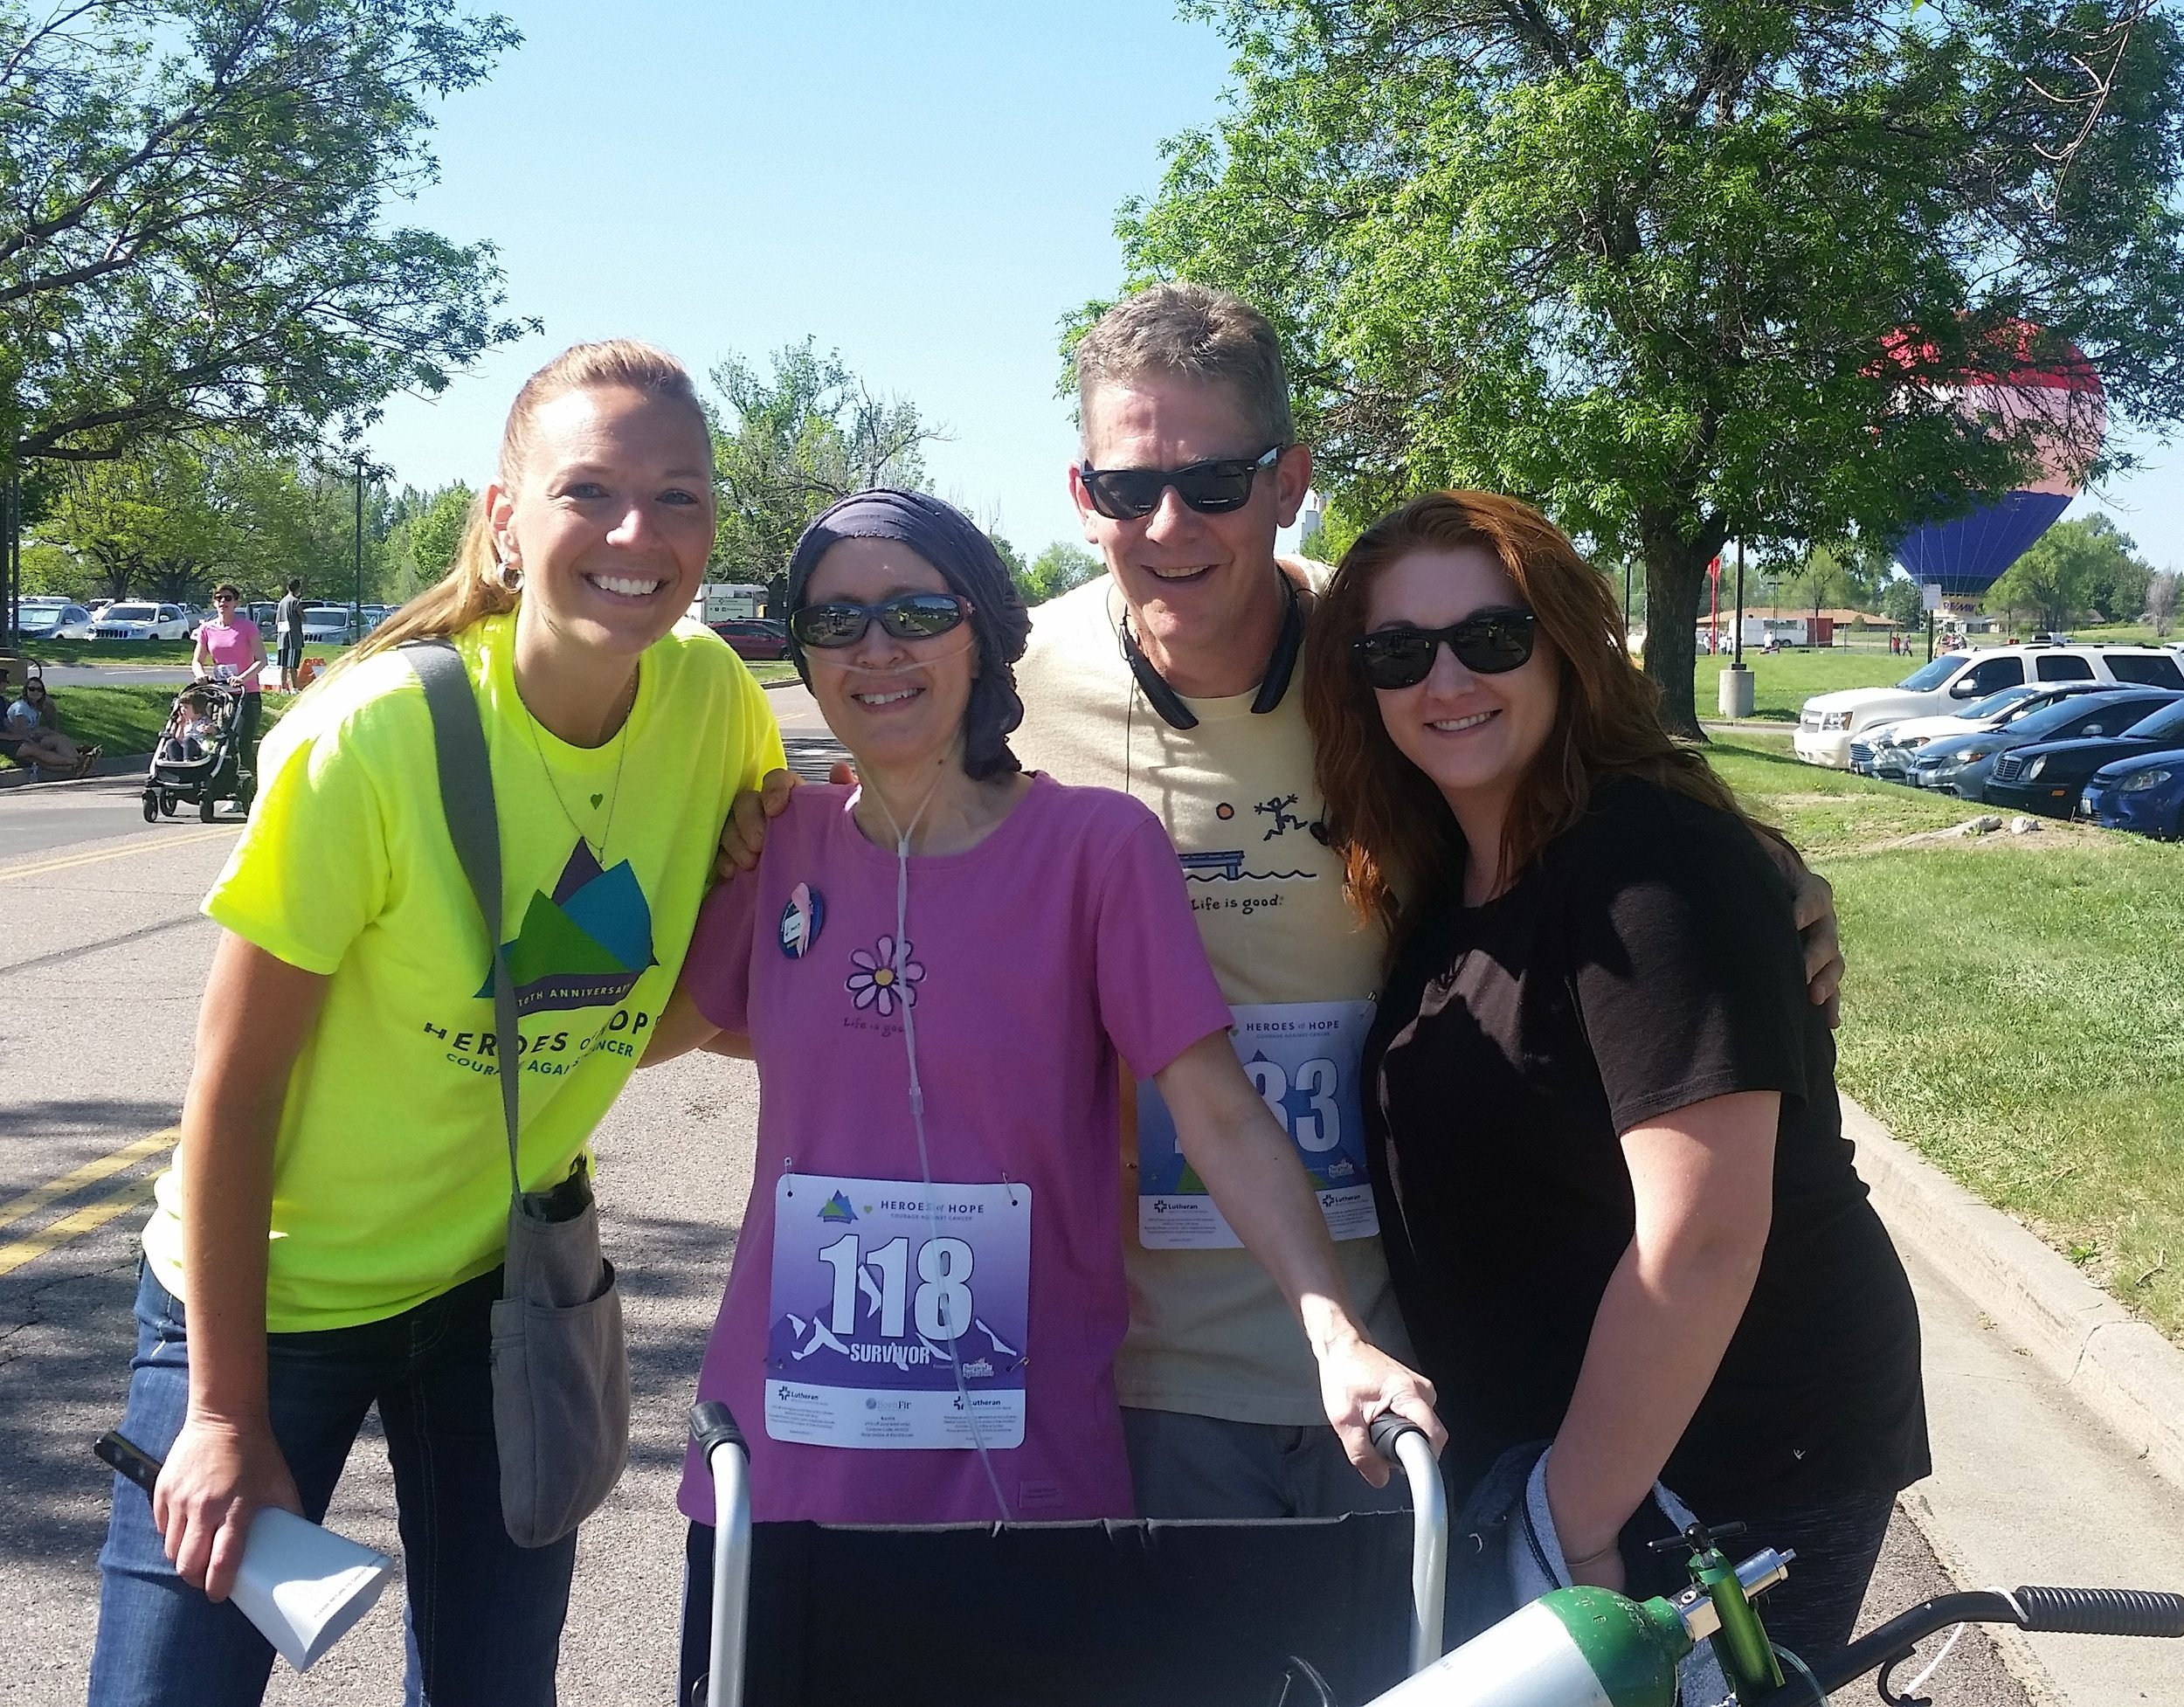 [L to R] Briana Zimbelman, RN, Carrie and Greg Dozbaba, and Taryn Anderson, RN at the 2017 Heroes of Hope race.